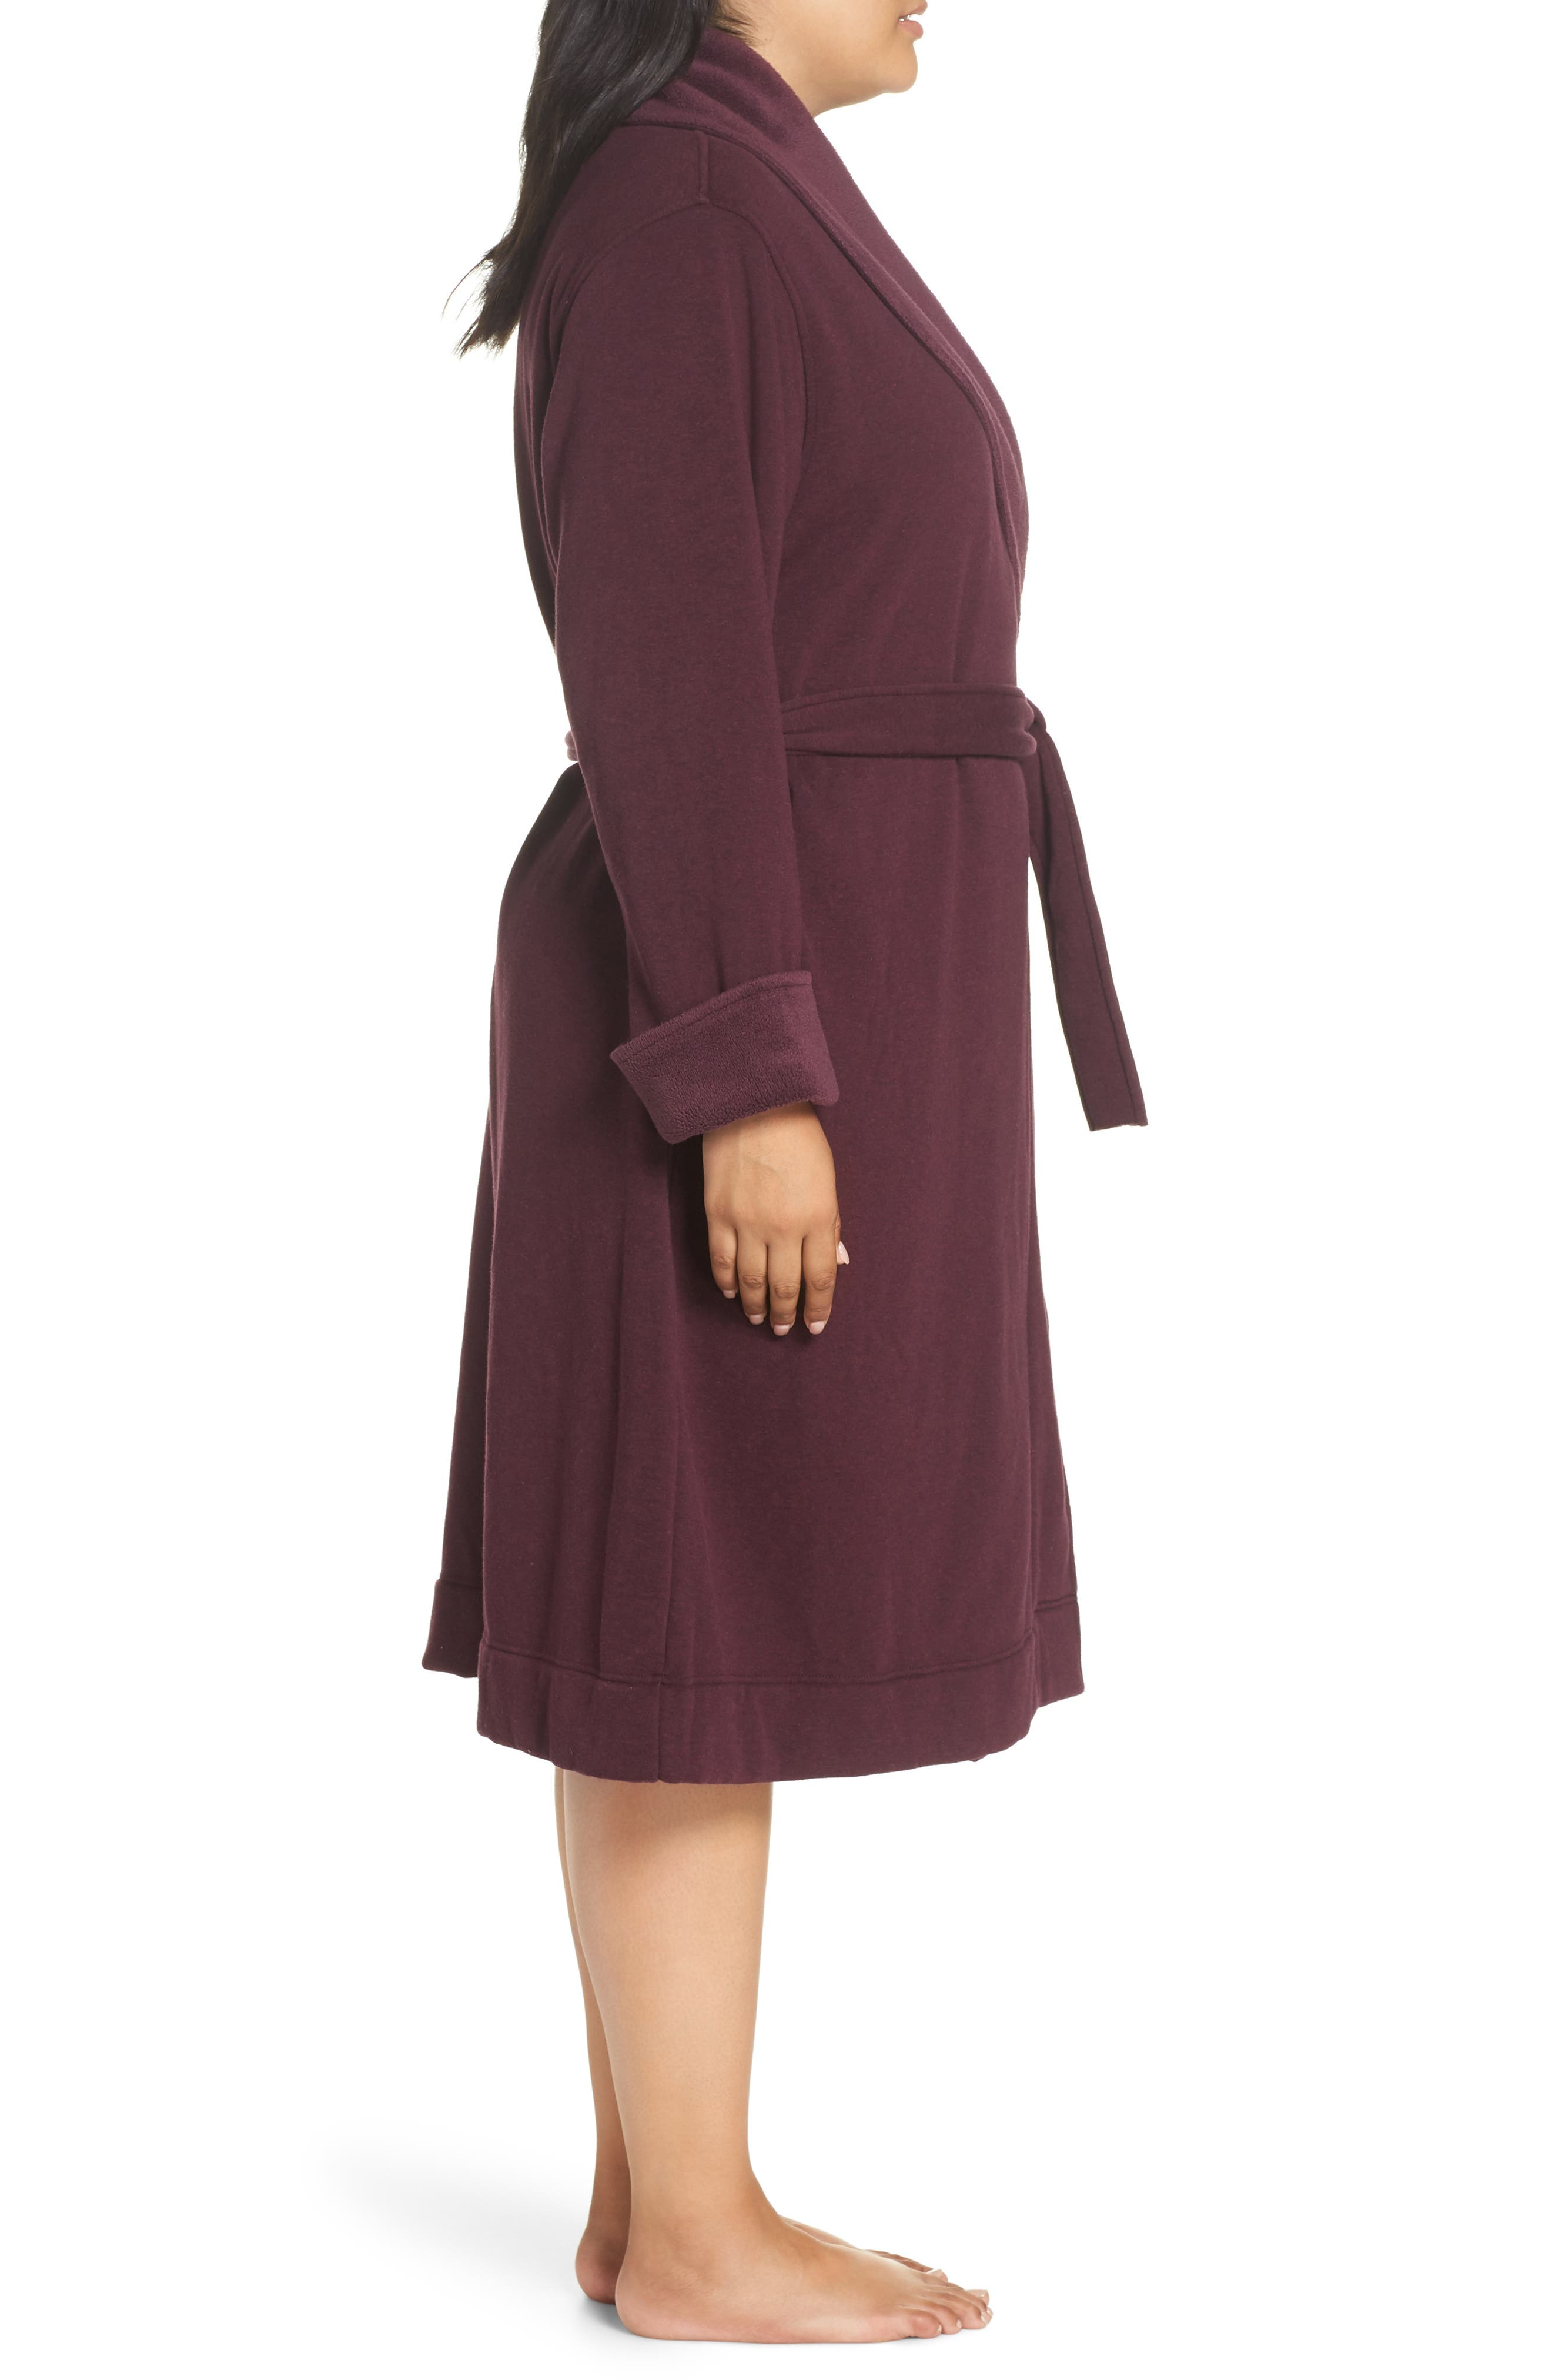 Duffield II Robe,                             Alternate thumbnail 3, color,                             PORT HEATHER